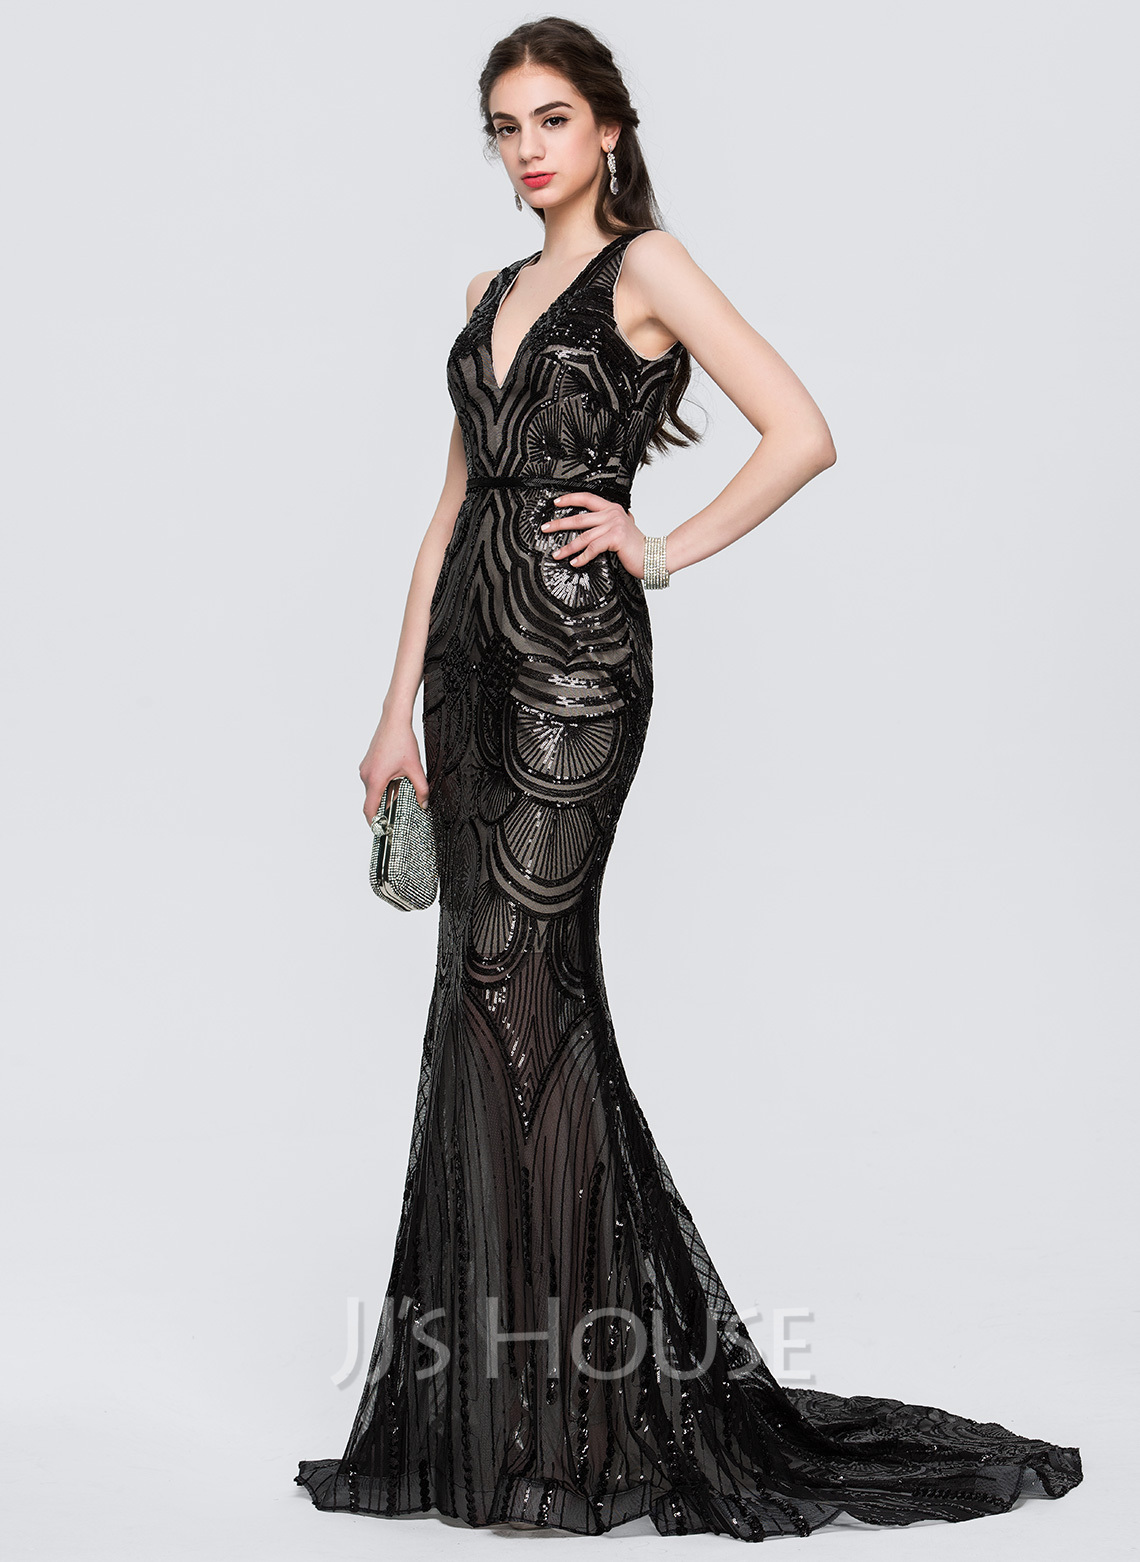 Sweapt Train Mermaid Trumpet Prom Dress